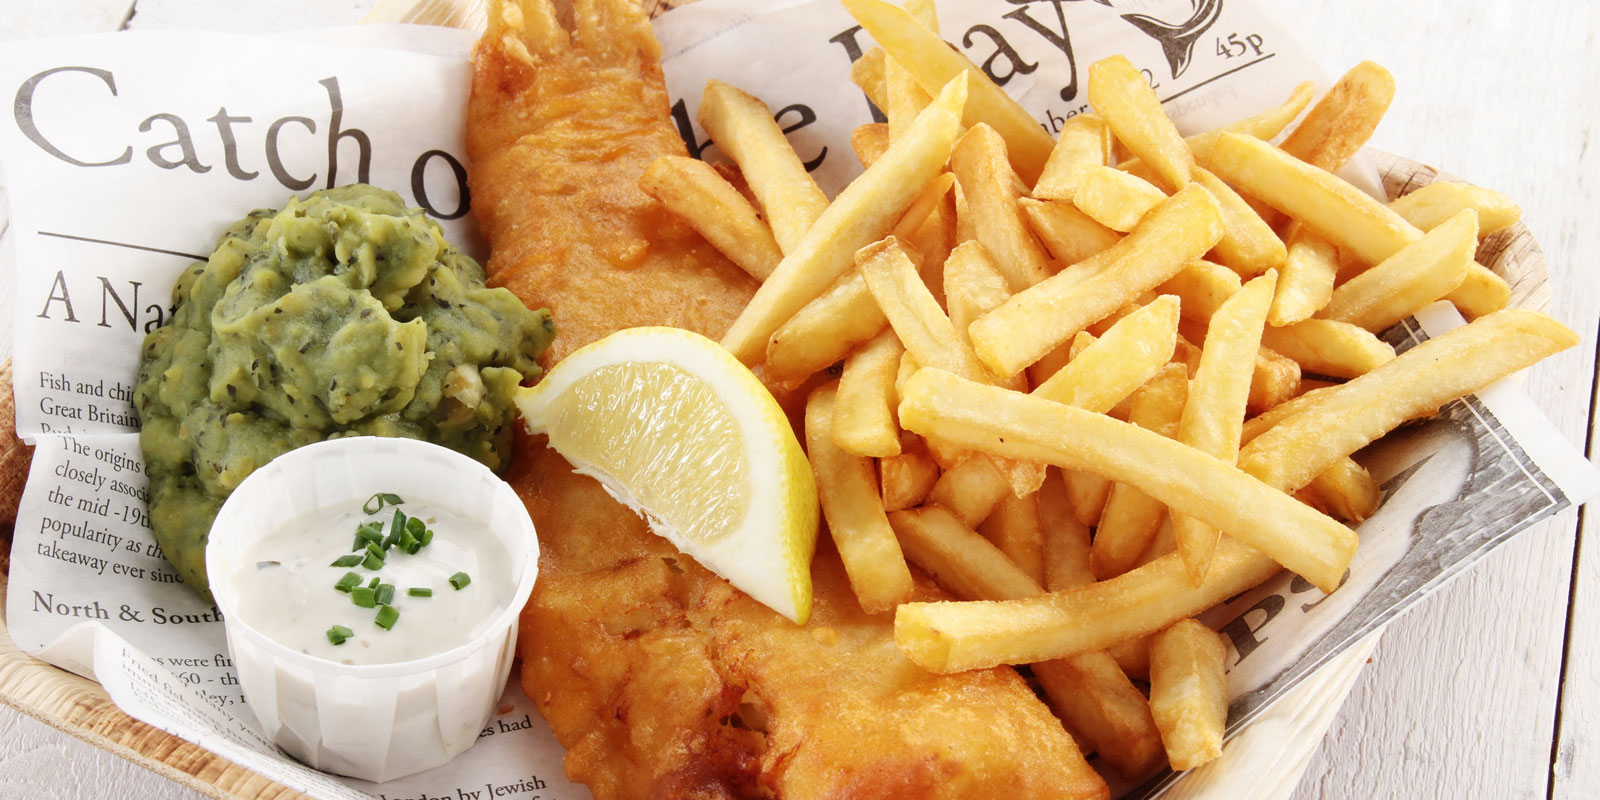 Necessities, Luxuries, and Fish & Chips